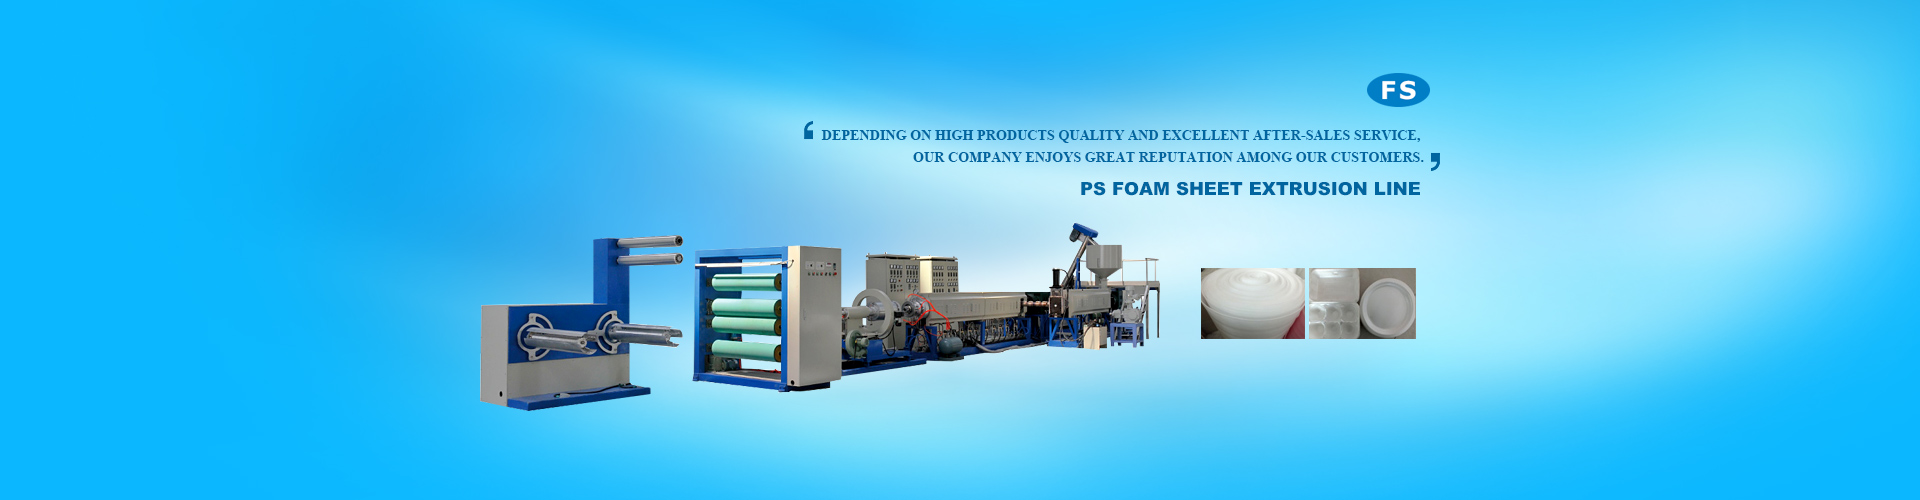 PS Foam Sheet Extrusion Line​​​​​